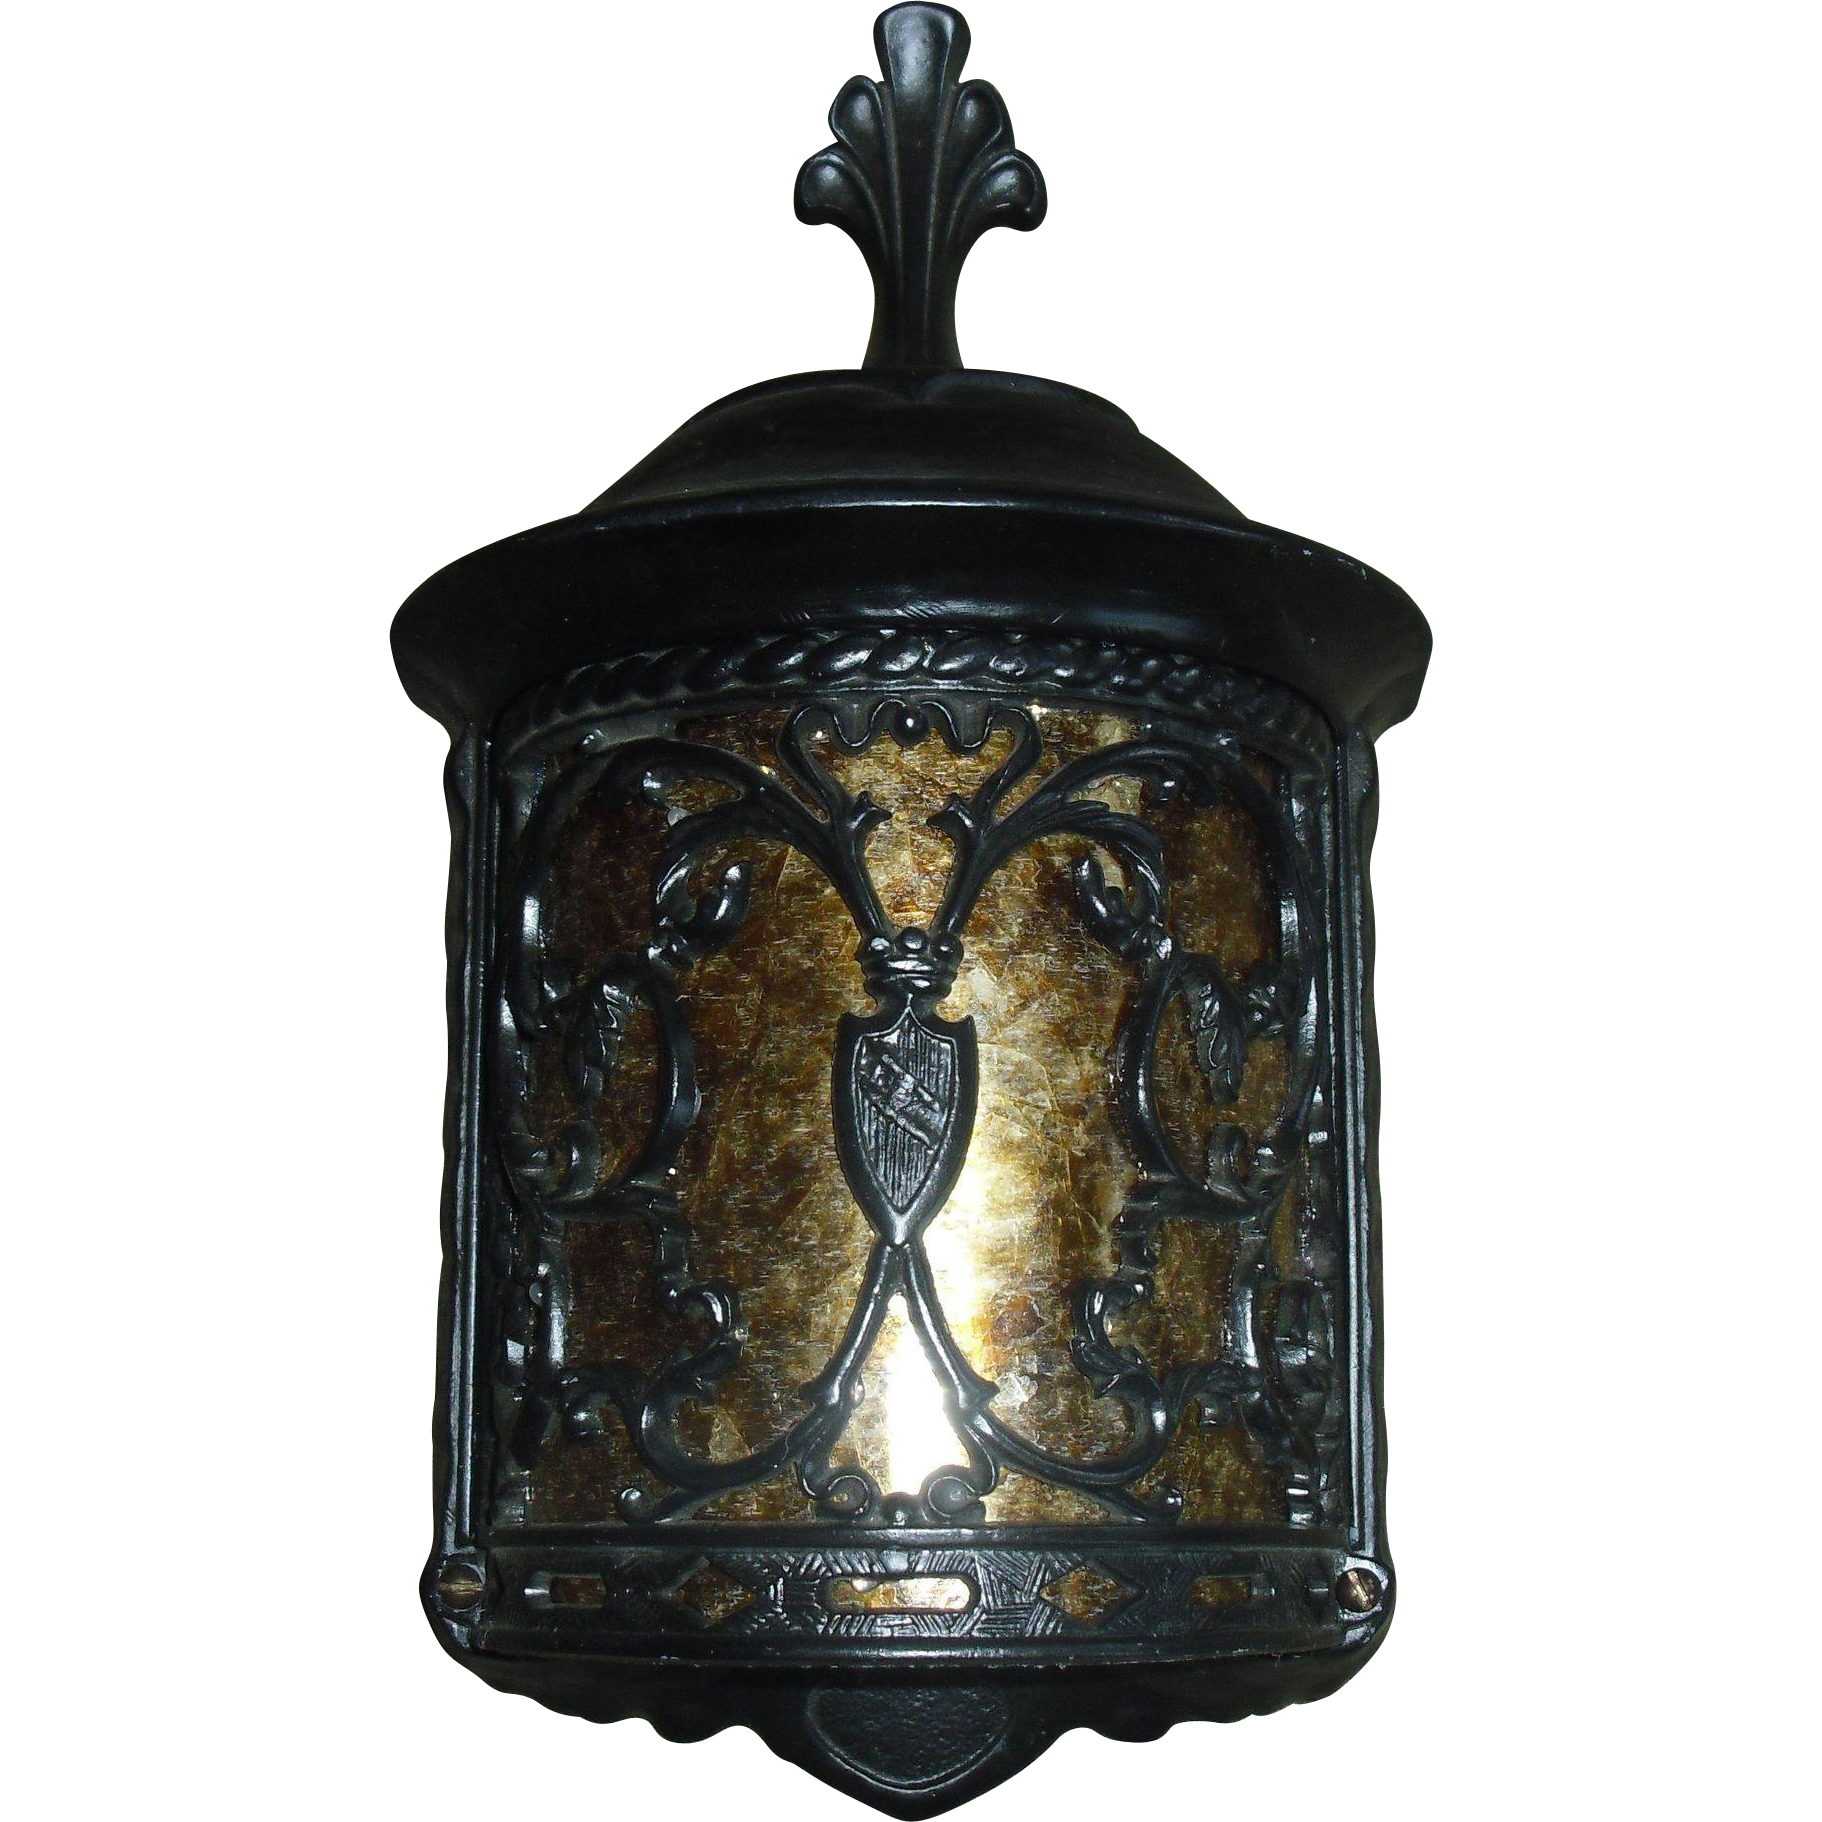 Spanish Revival Porch Light Fixtures With Mica Panels 4